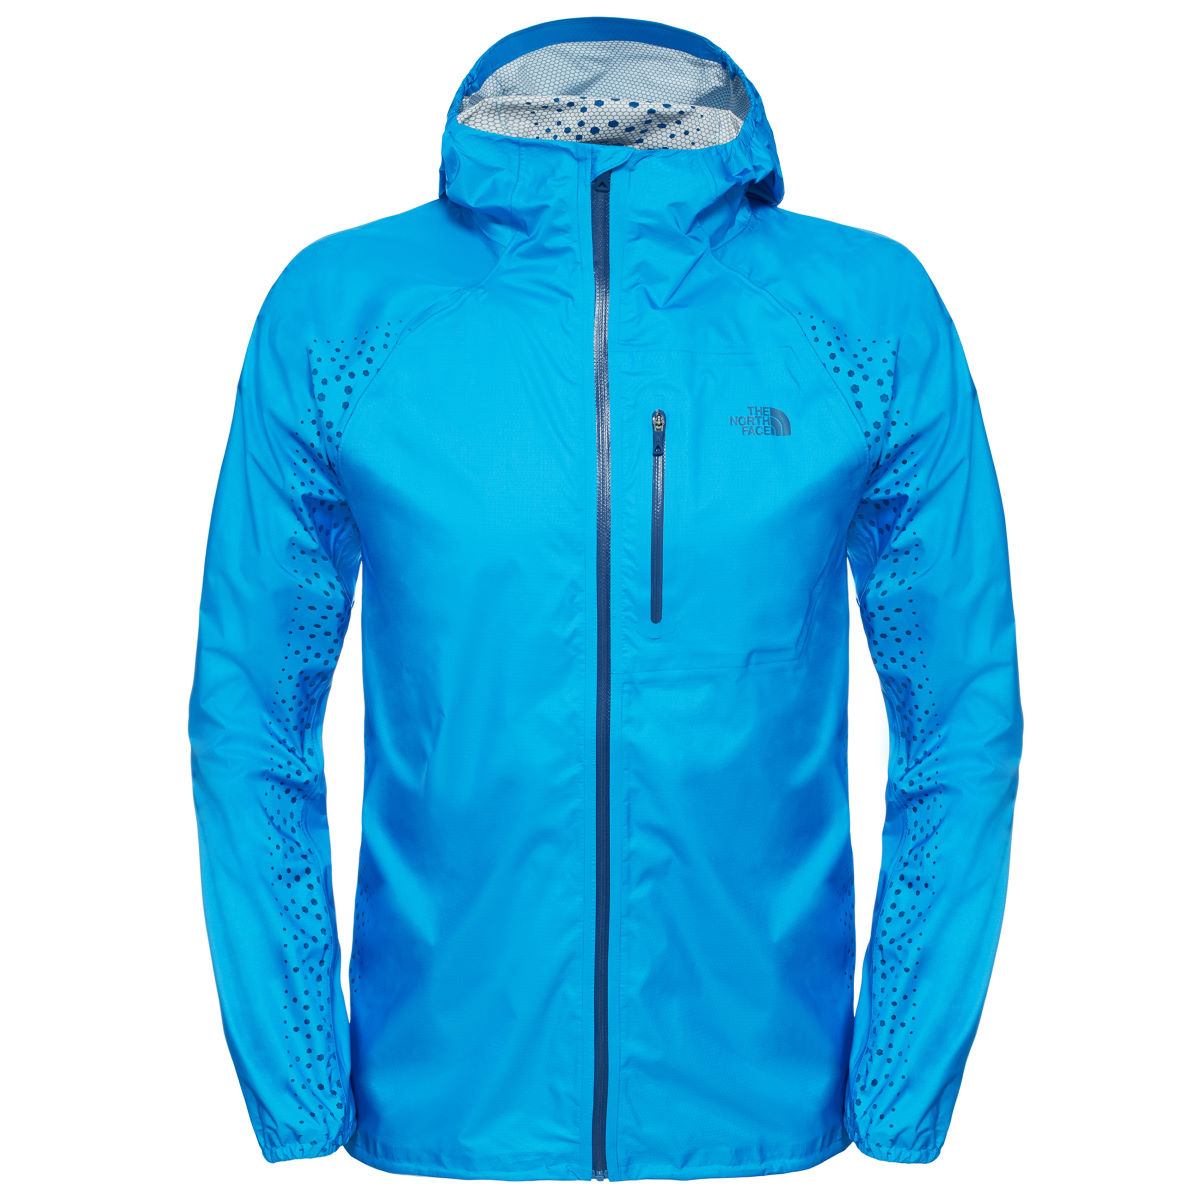 Veste The North Face Flight Series Fuse - XL Blue Aster Vestes de running imperméables